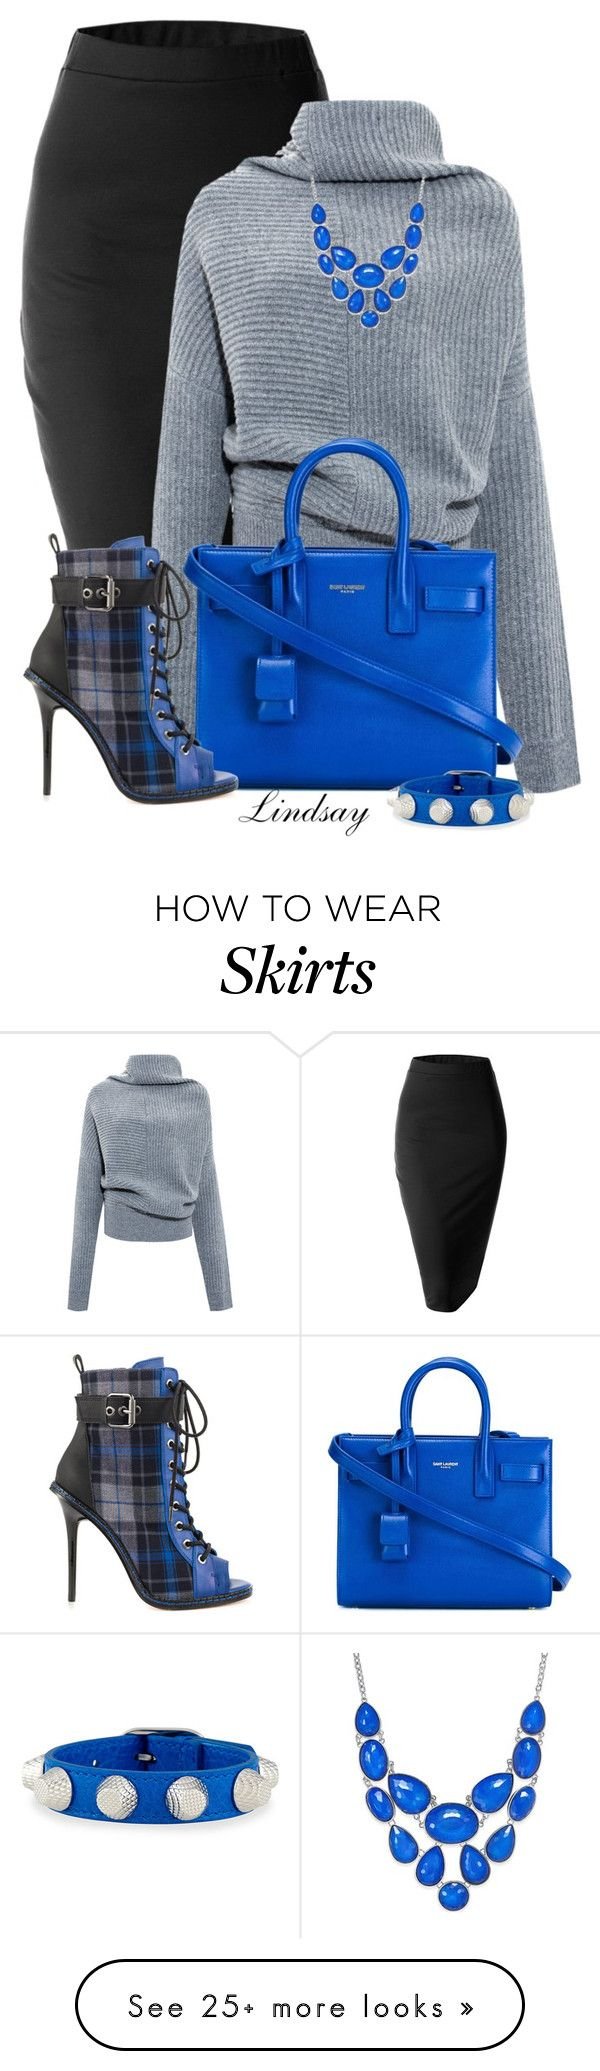 """Saint Laurent nano 'Sac de Jour' tote"" by lindsayd78 on Polyvore featuring Doublju, Acne Studios, Yves Saint Laurent, GX, Style & Co. and Balenciaga"